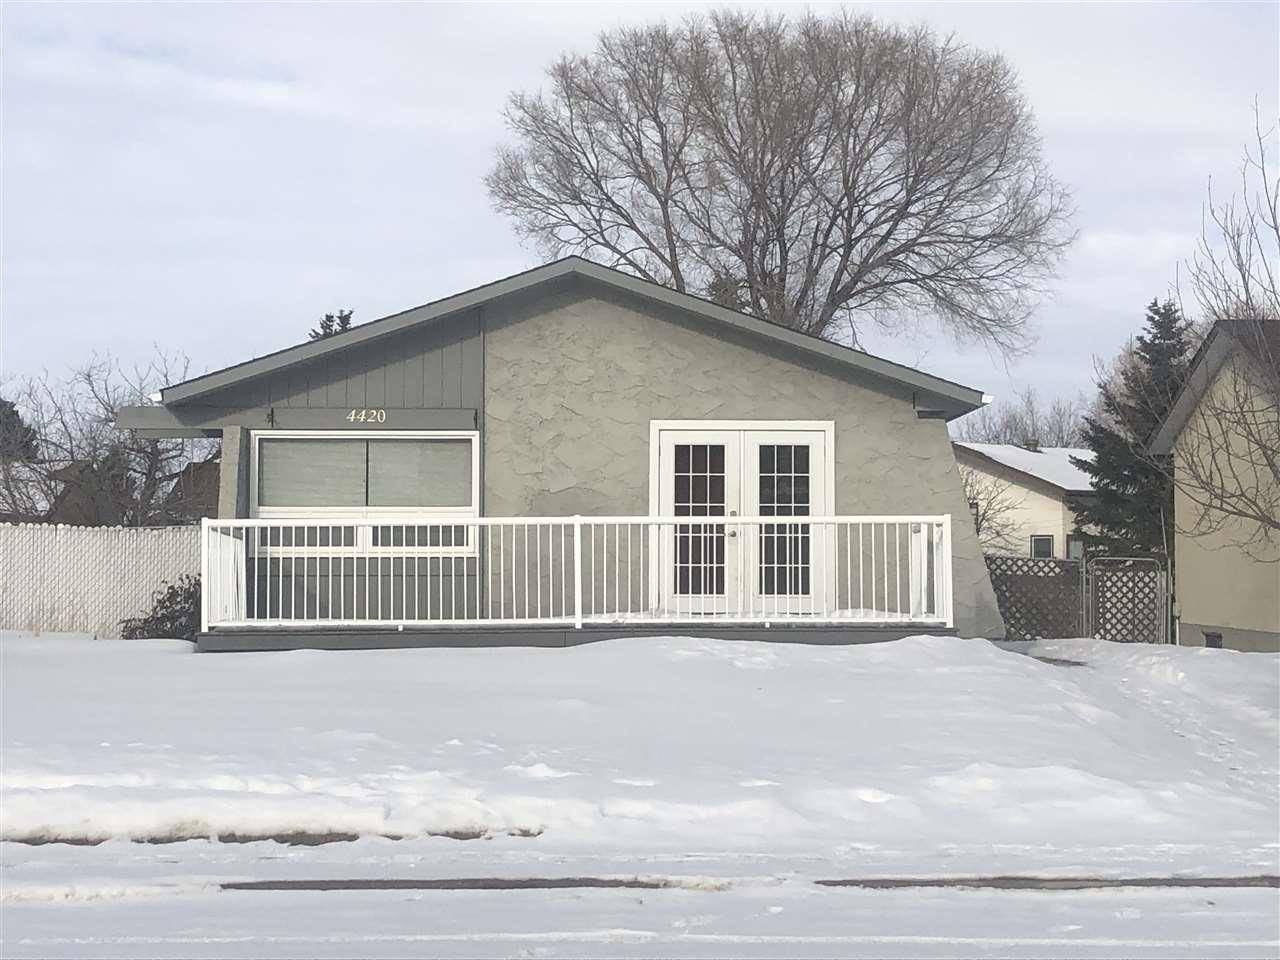 House for sale at 4420 56 Ave Wetaskiwin Alberta - MLS: E4186546